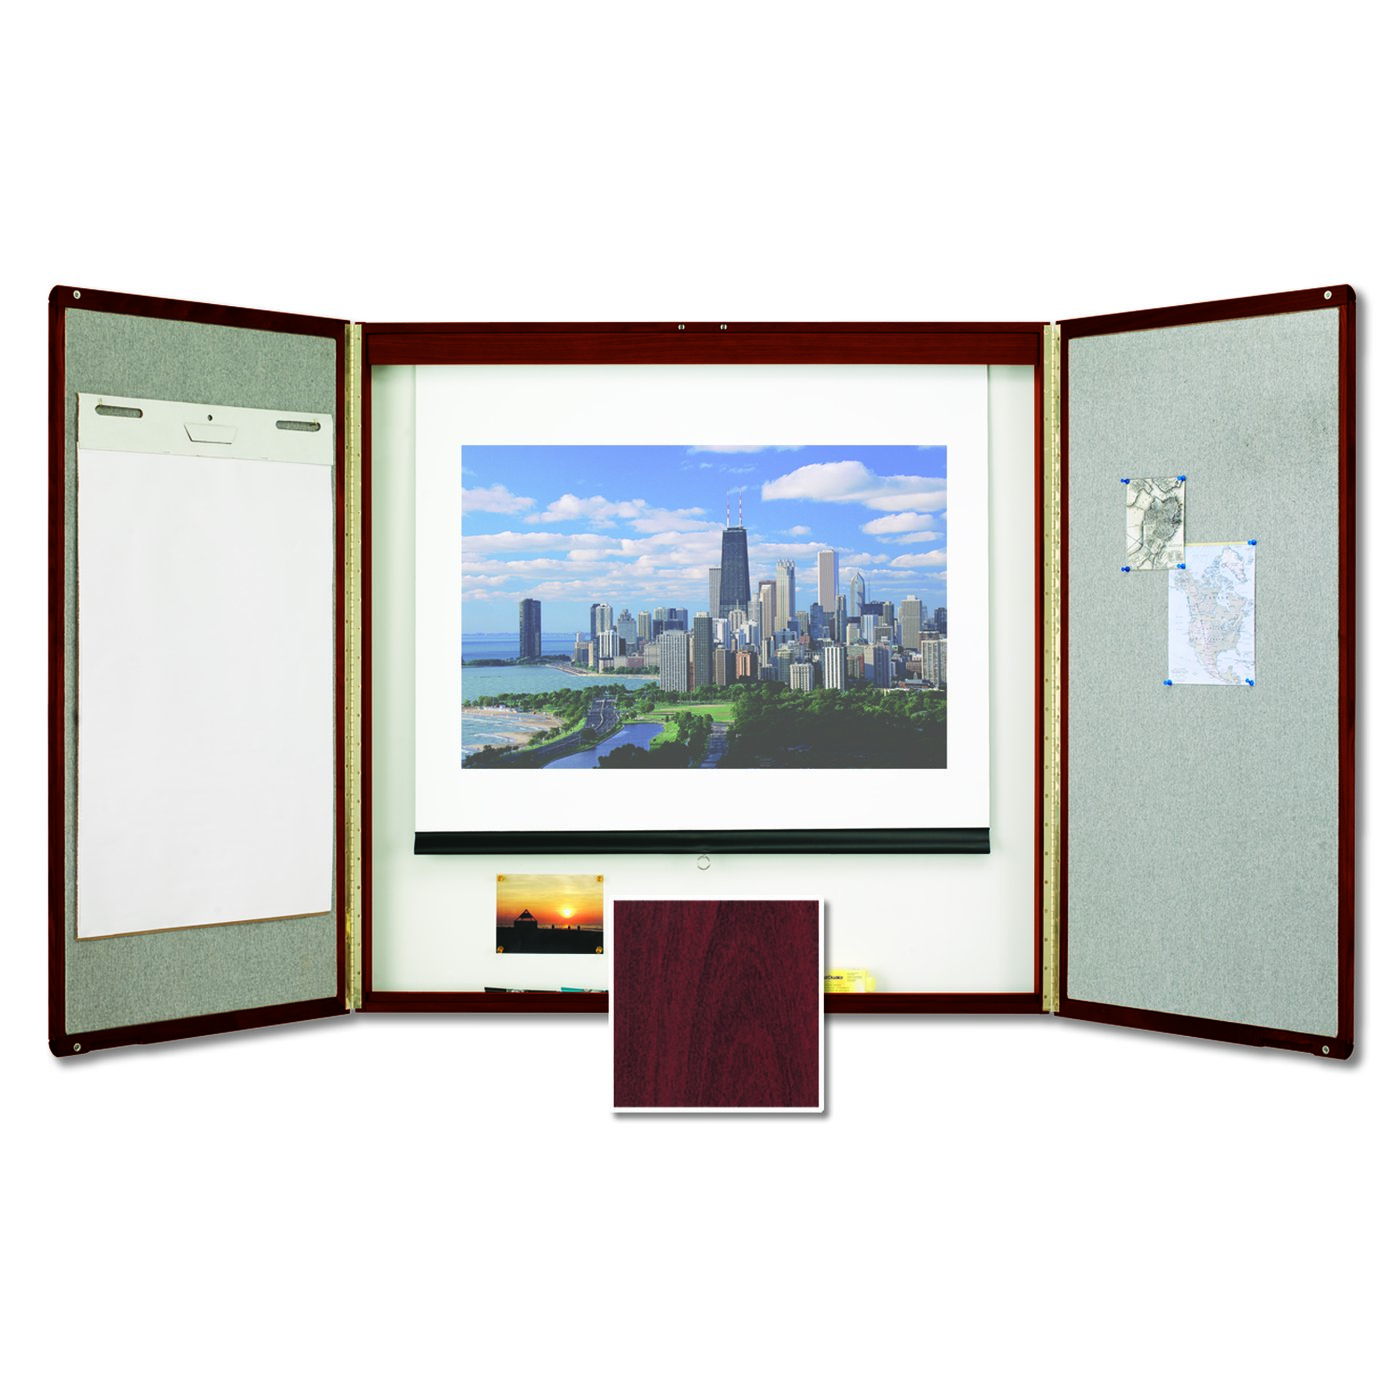 Attirant Quartet® Premium Conference Room Cabinet, 4u0027 X 4u0027, Whiteboard Interior With